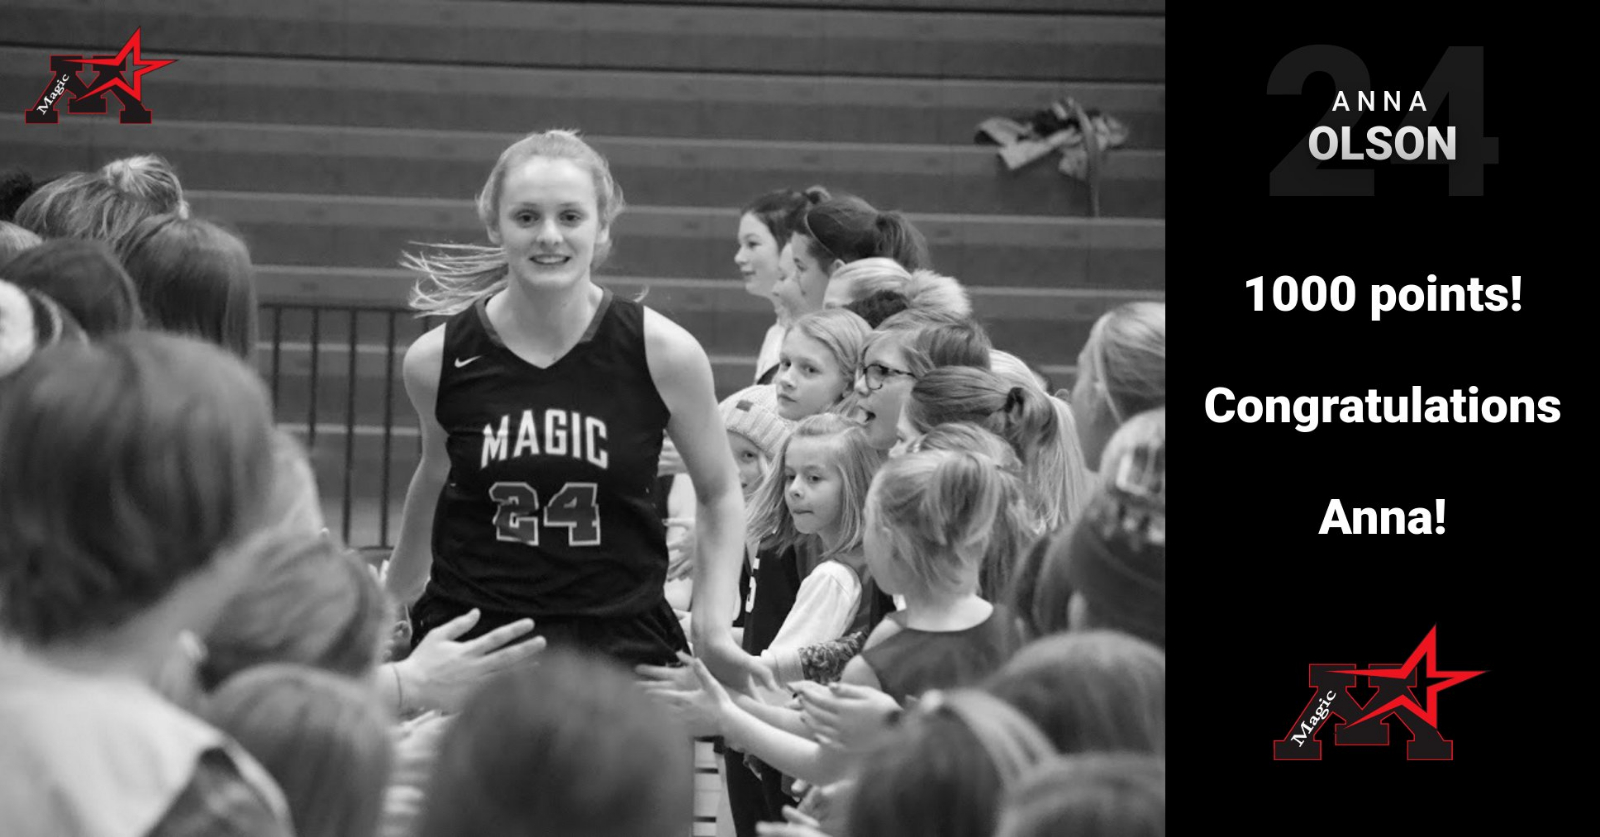 Anna Olson notches 1000th career point, becoming second youngest to reach scoring milestone in program history!